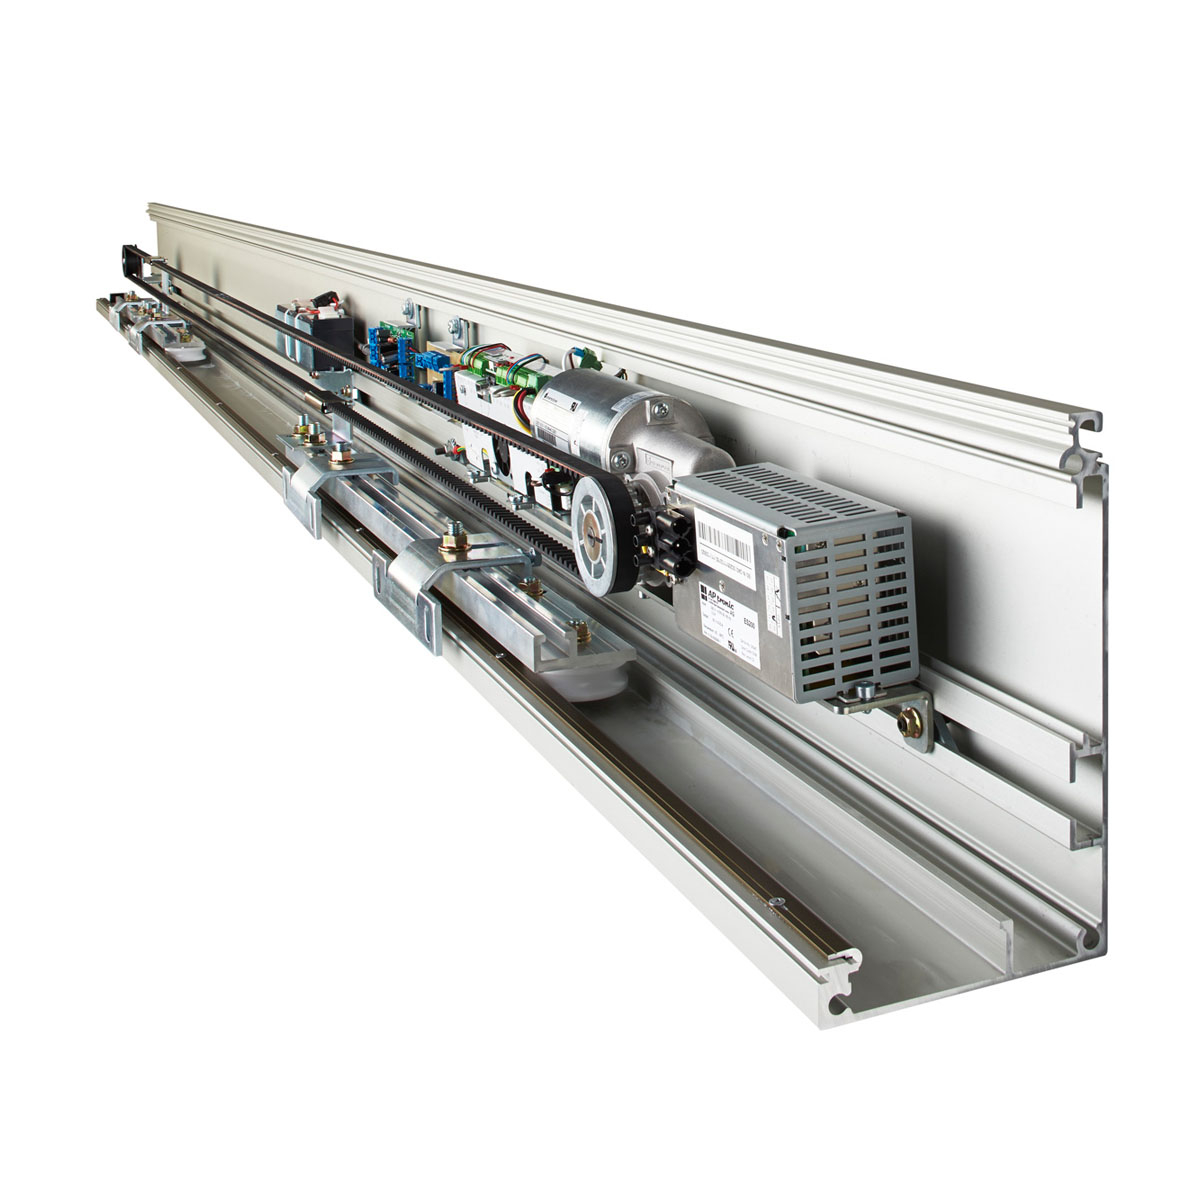 Automatic Sliding Door Dorma Wiring Diagram Dodge Ram Pictures Of